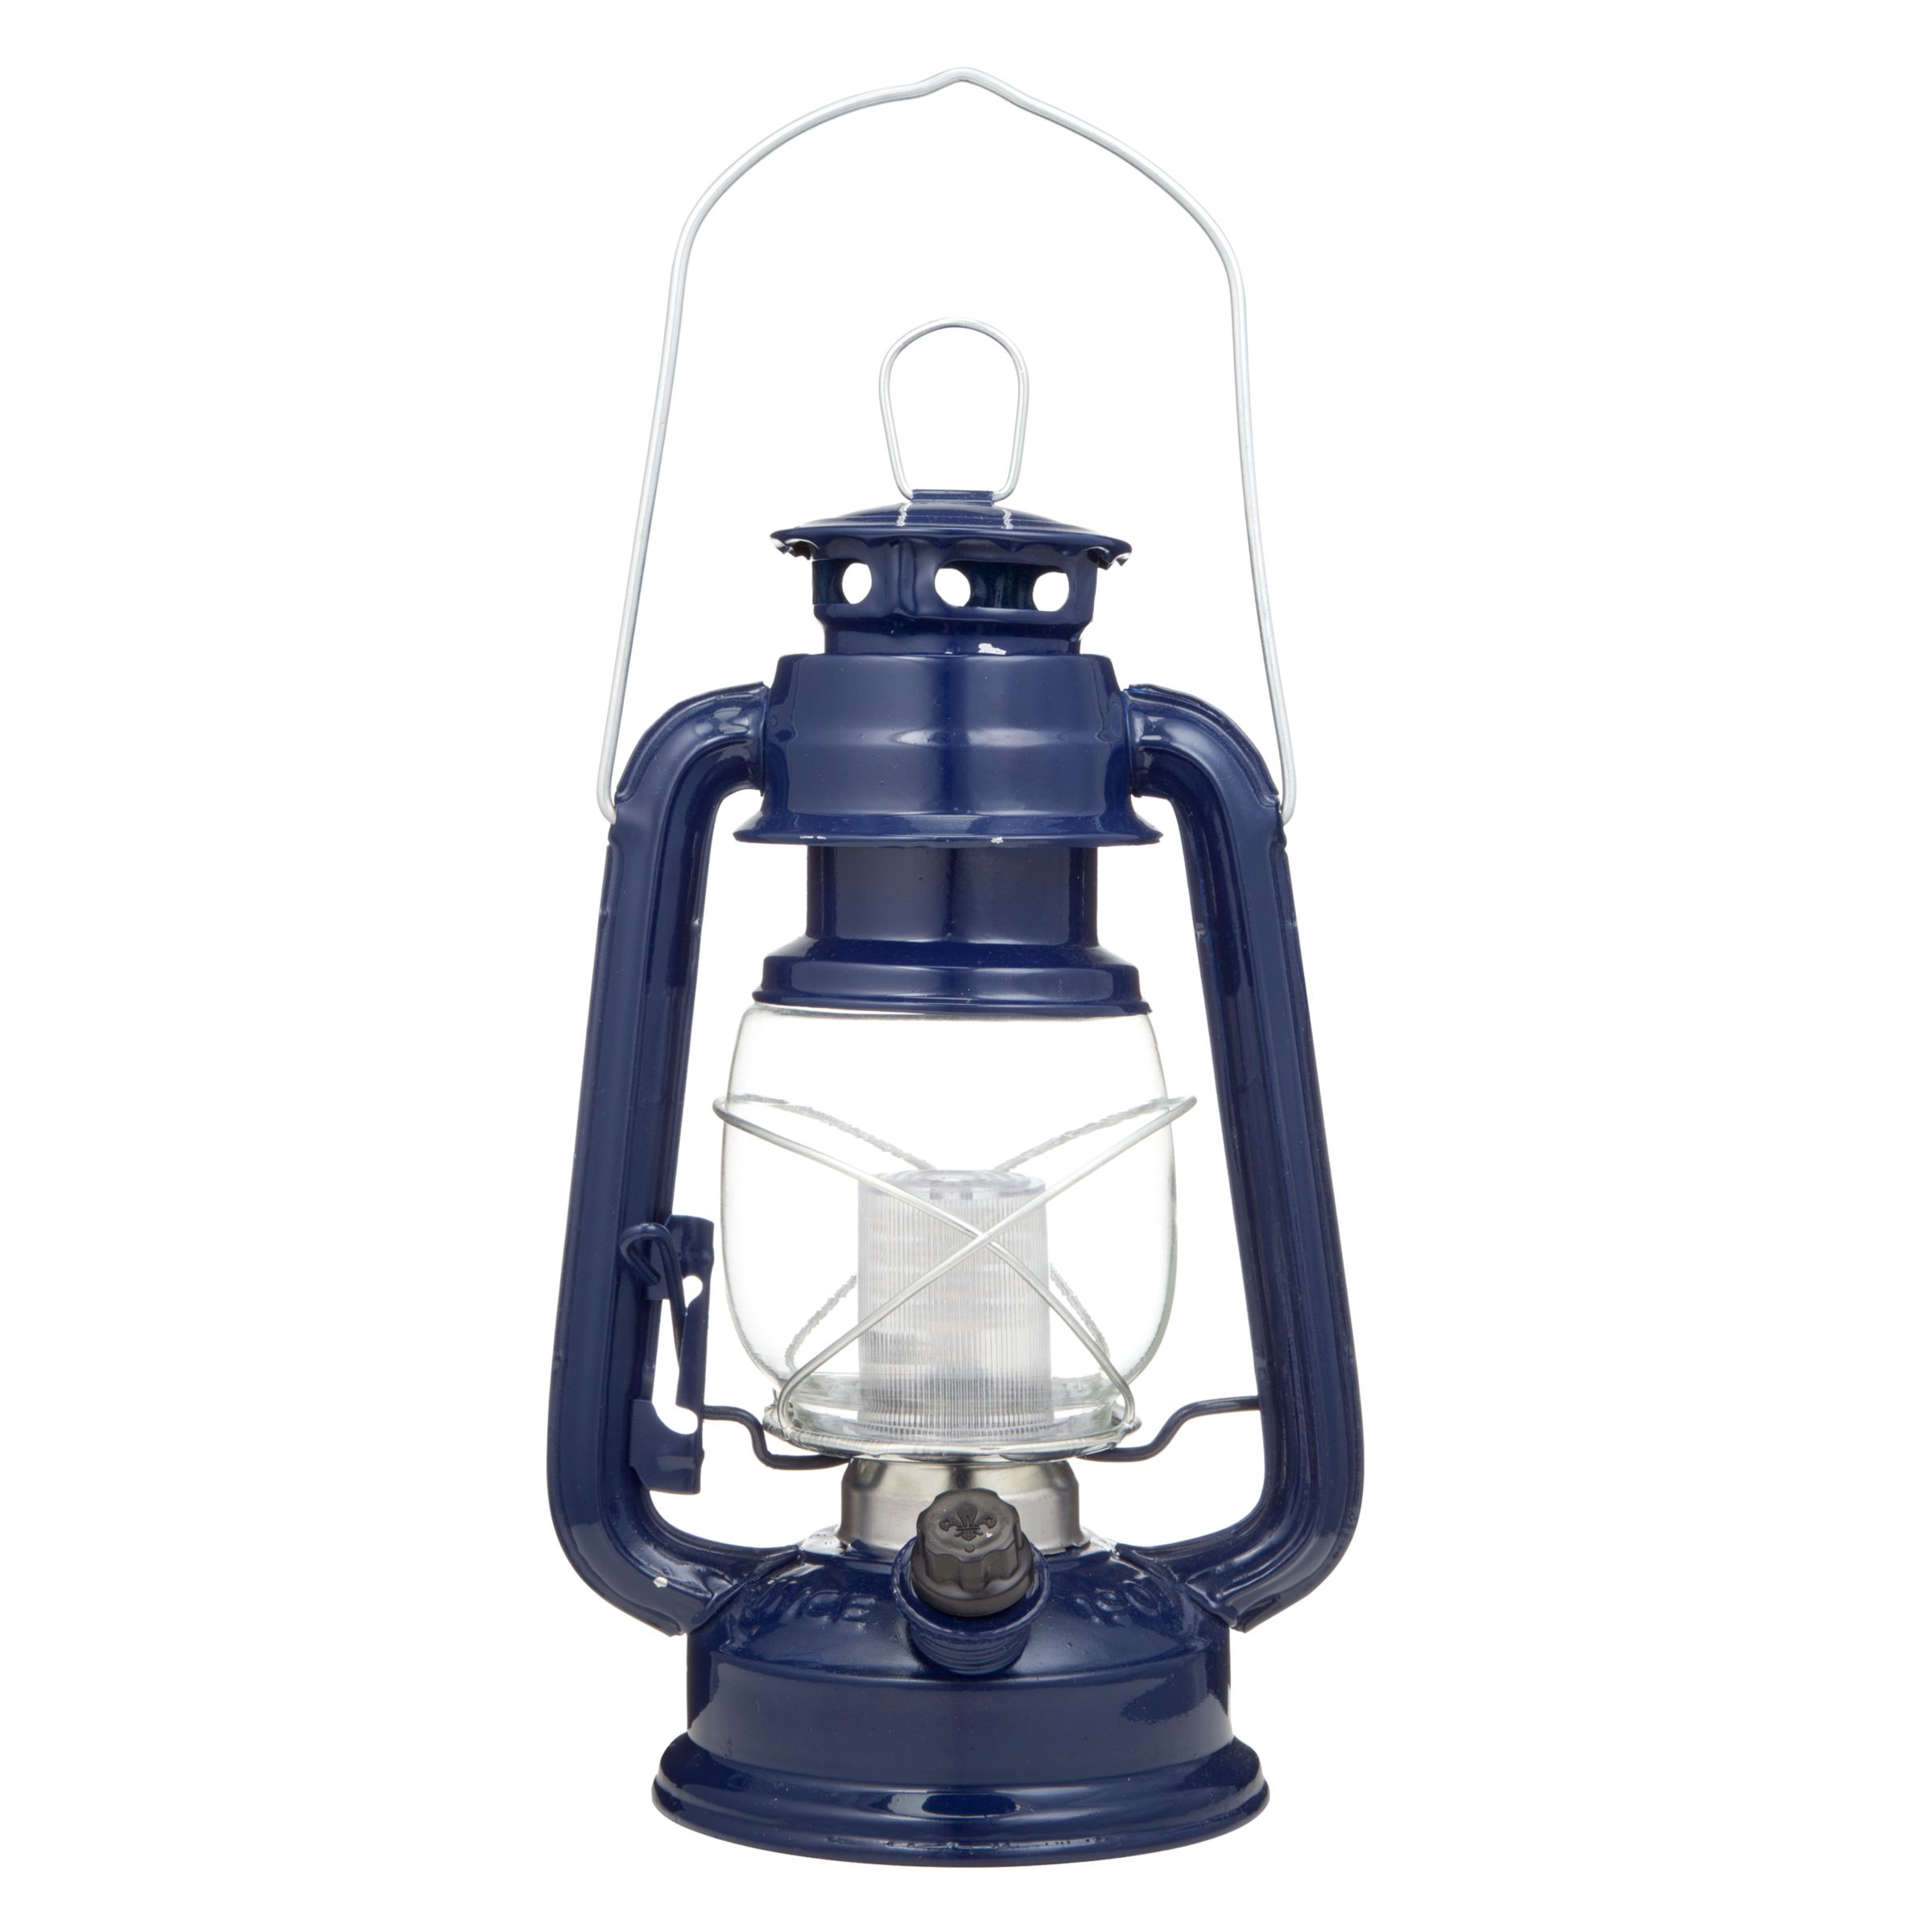 Scouting LED Lantern, Blue, Large